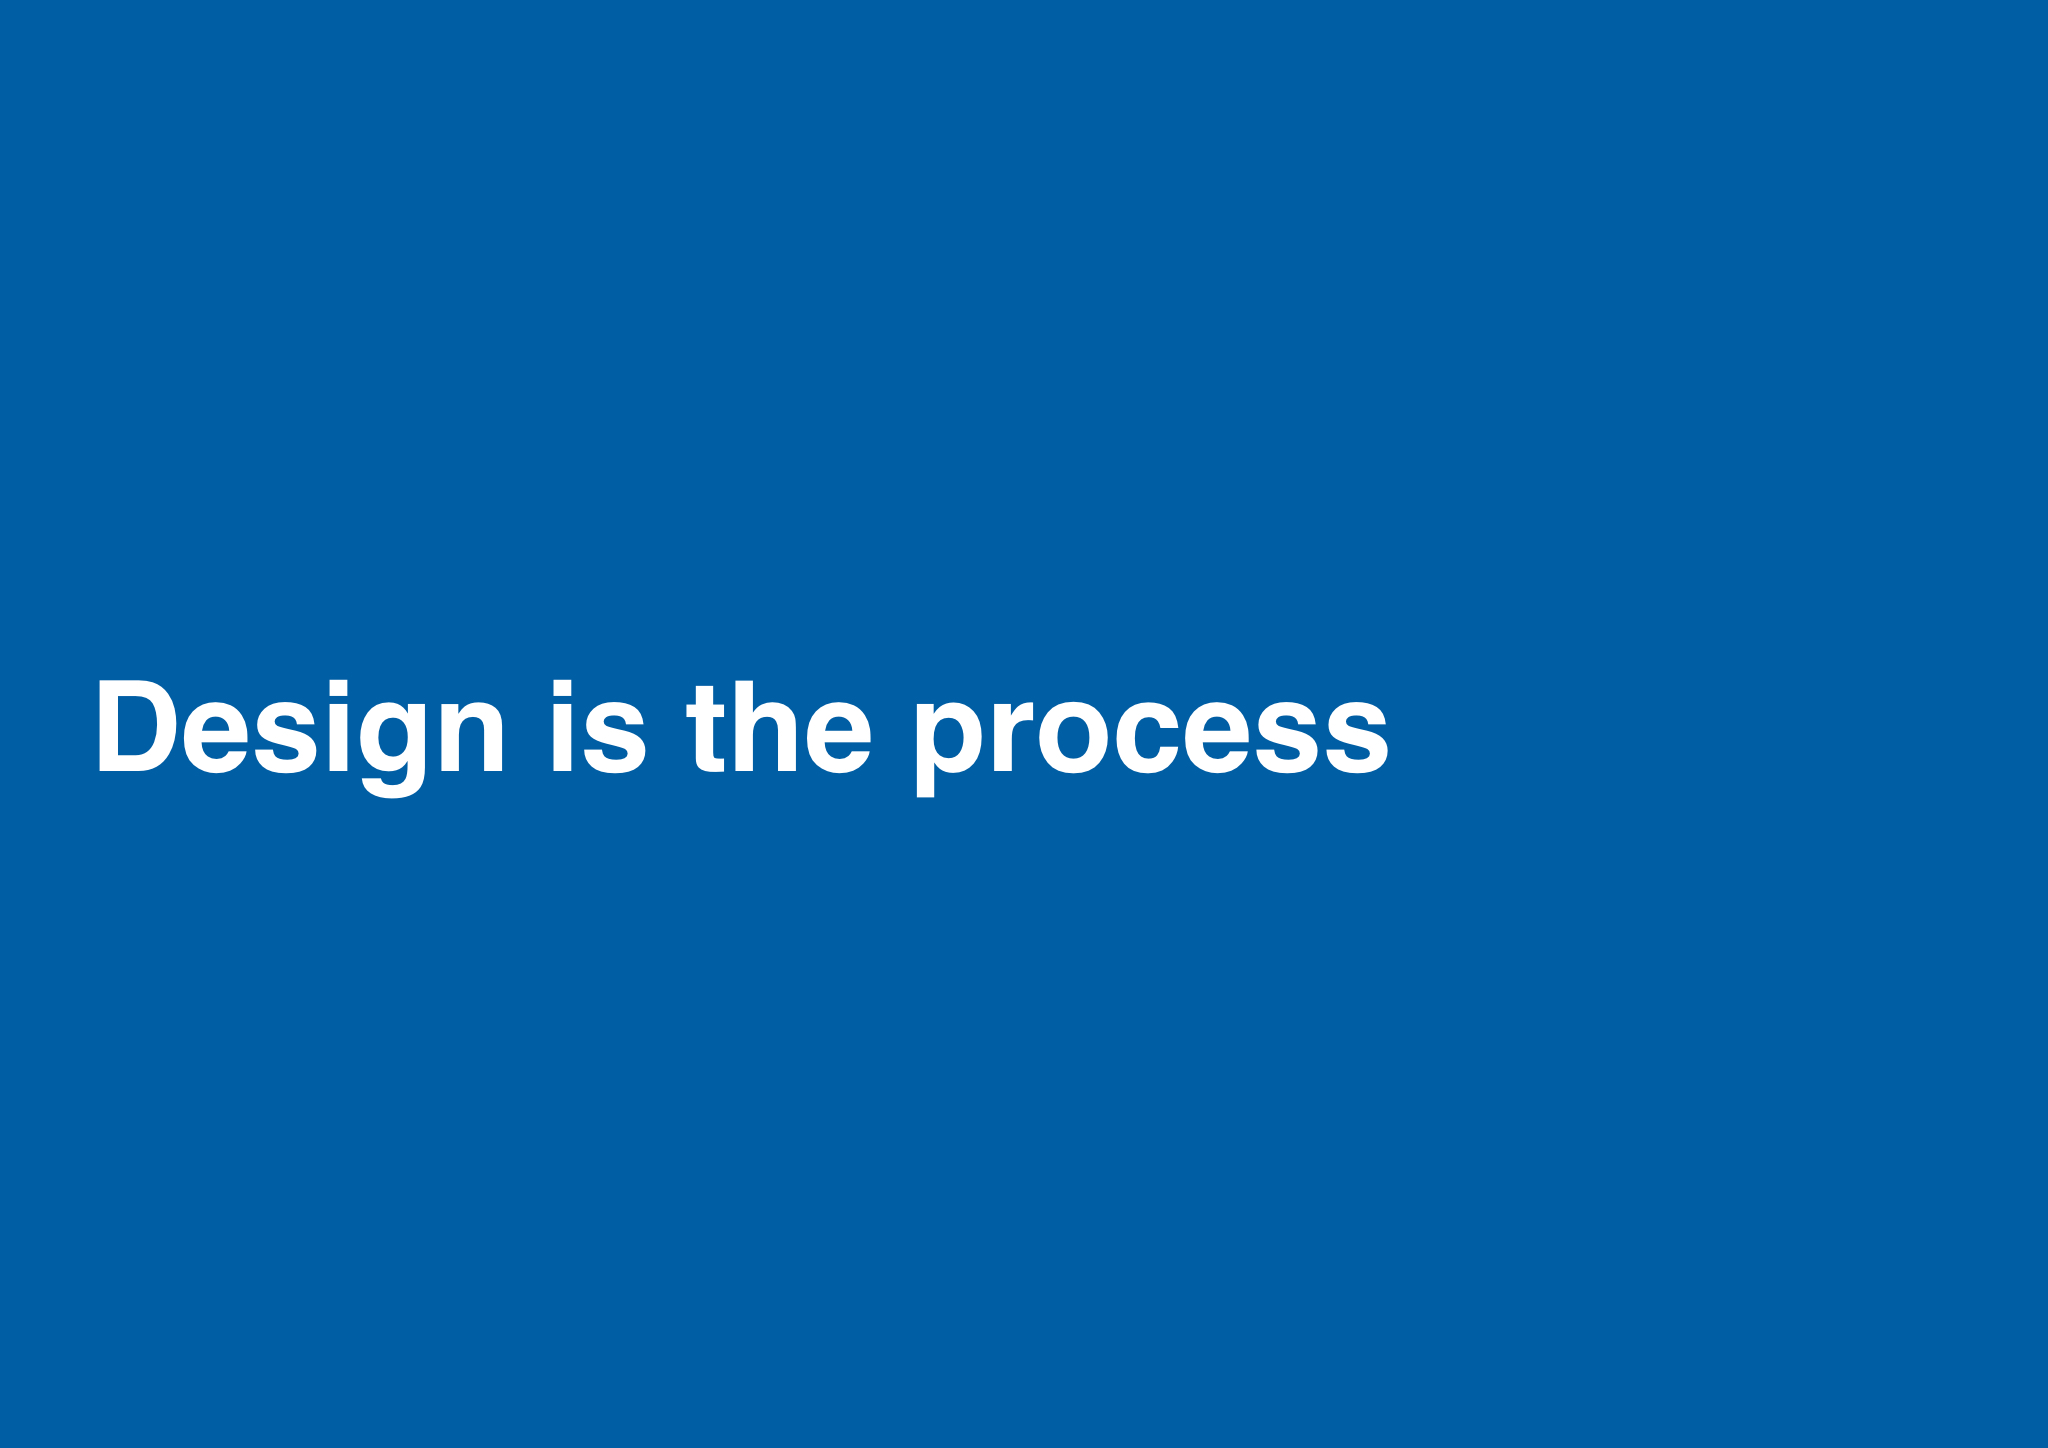 Design is the process